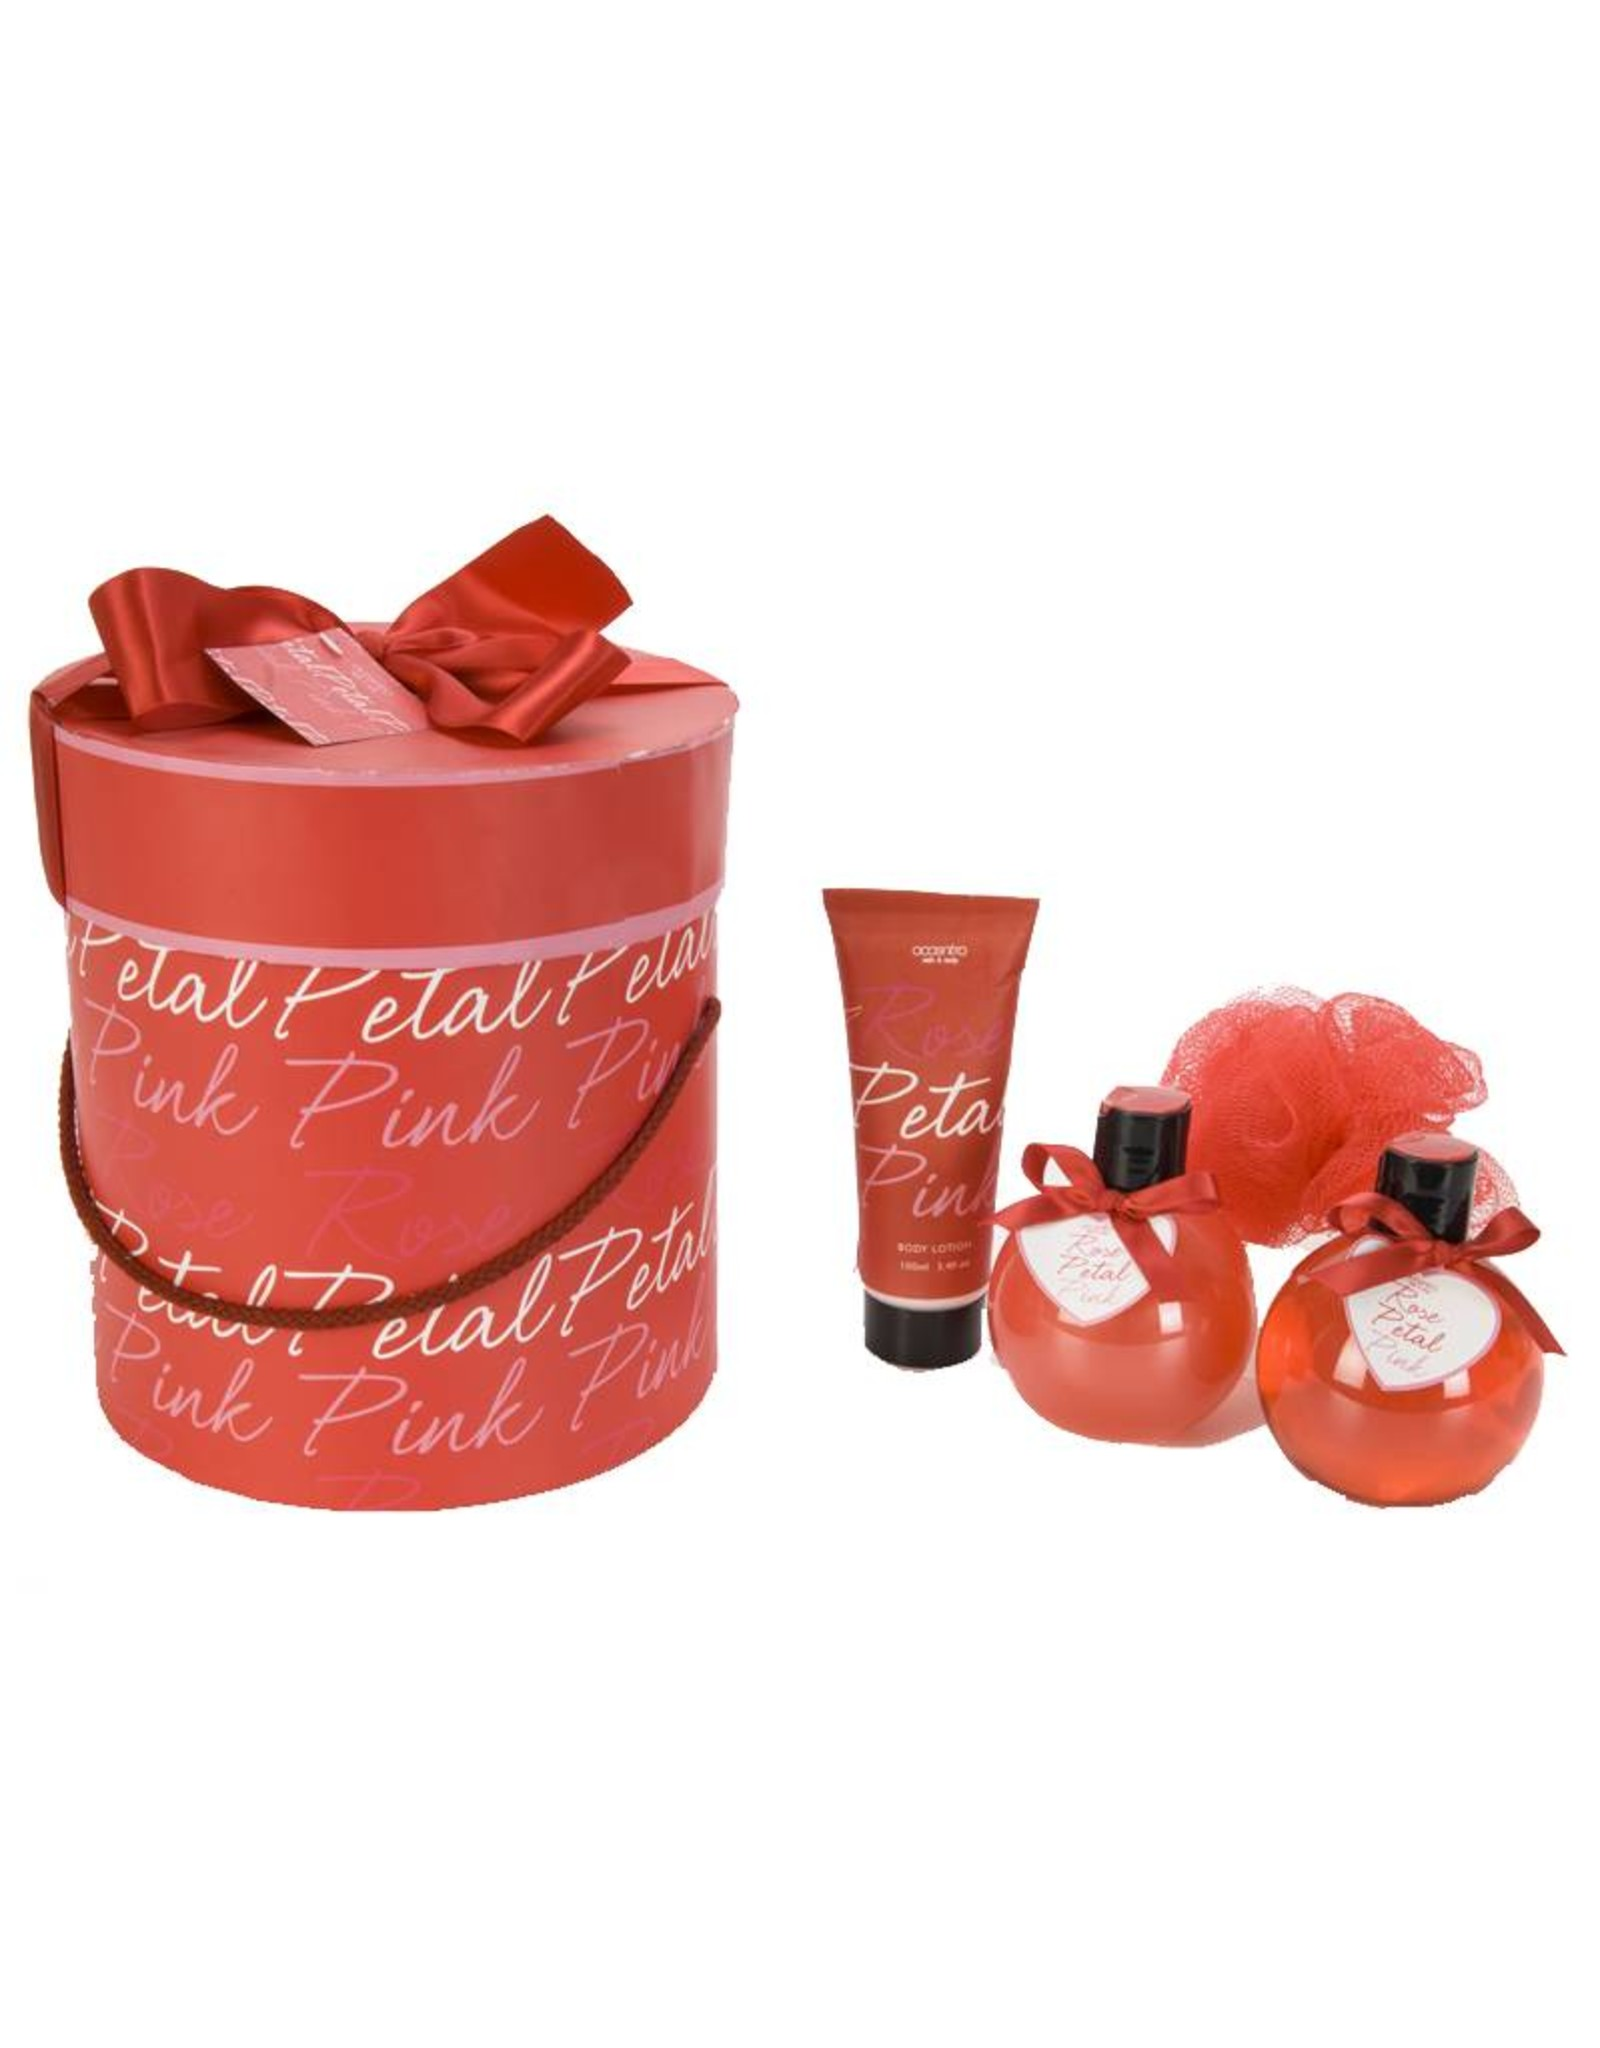 Giftset 'Rose Petal' Luxe box - Body & Soap